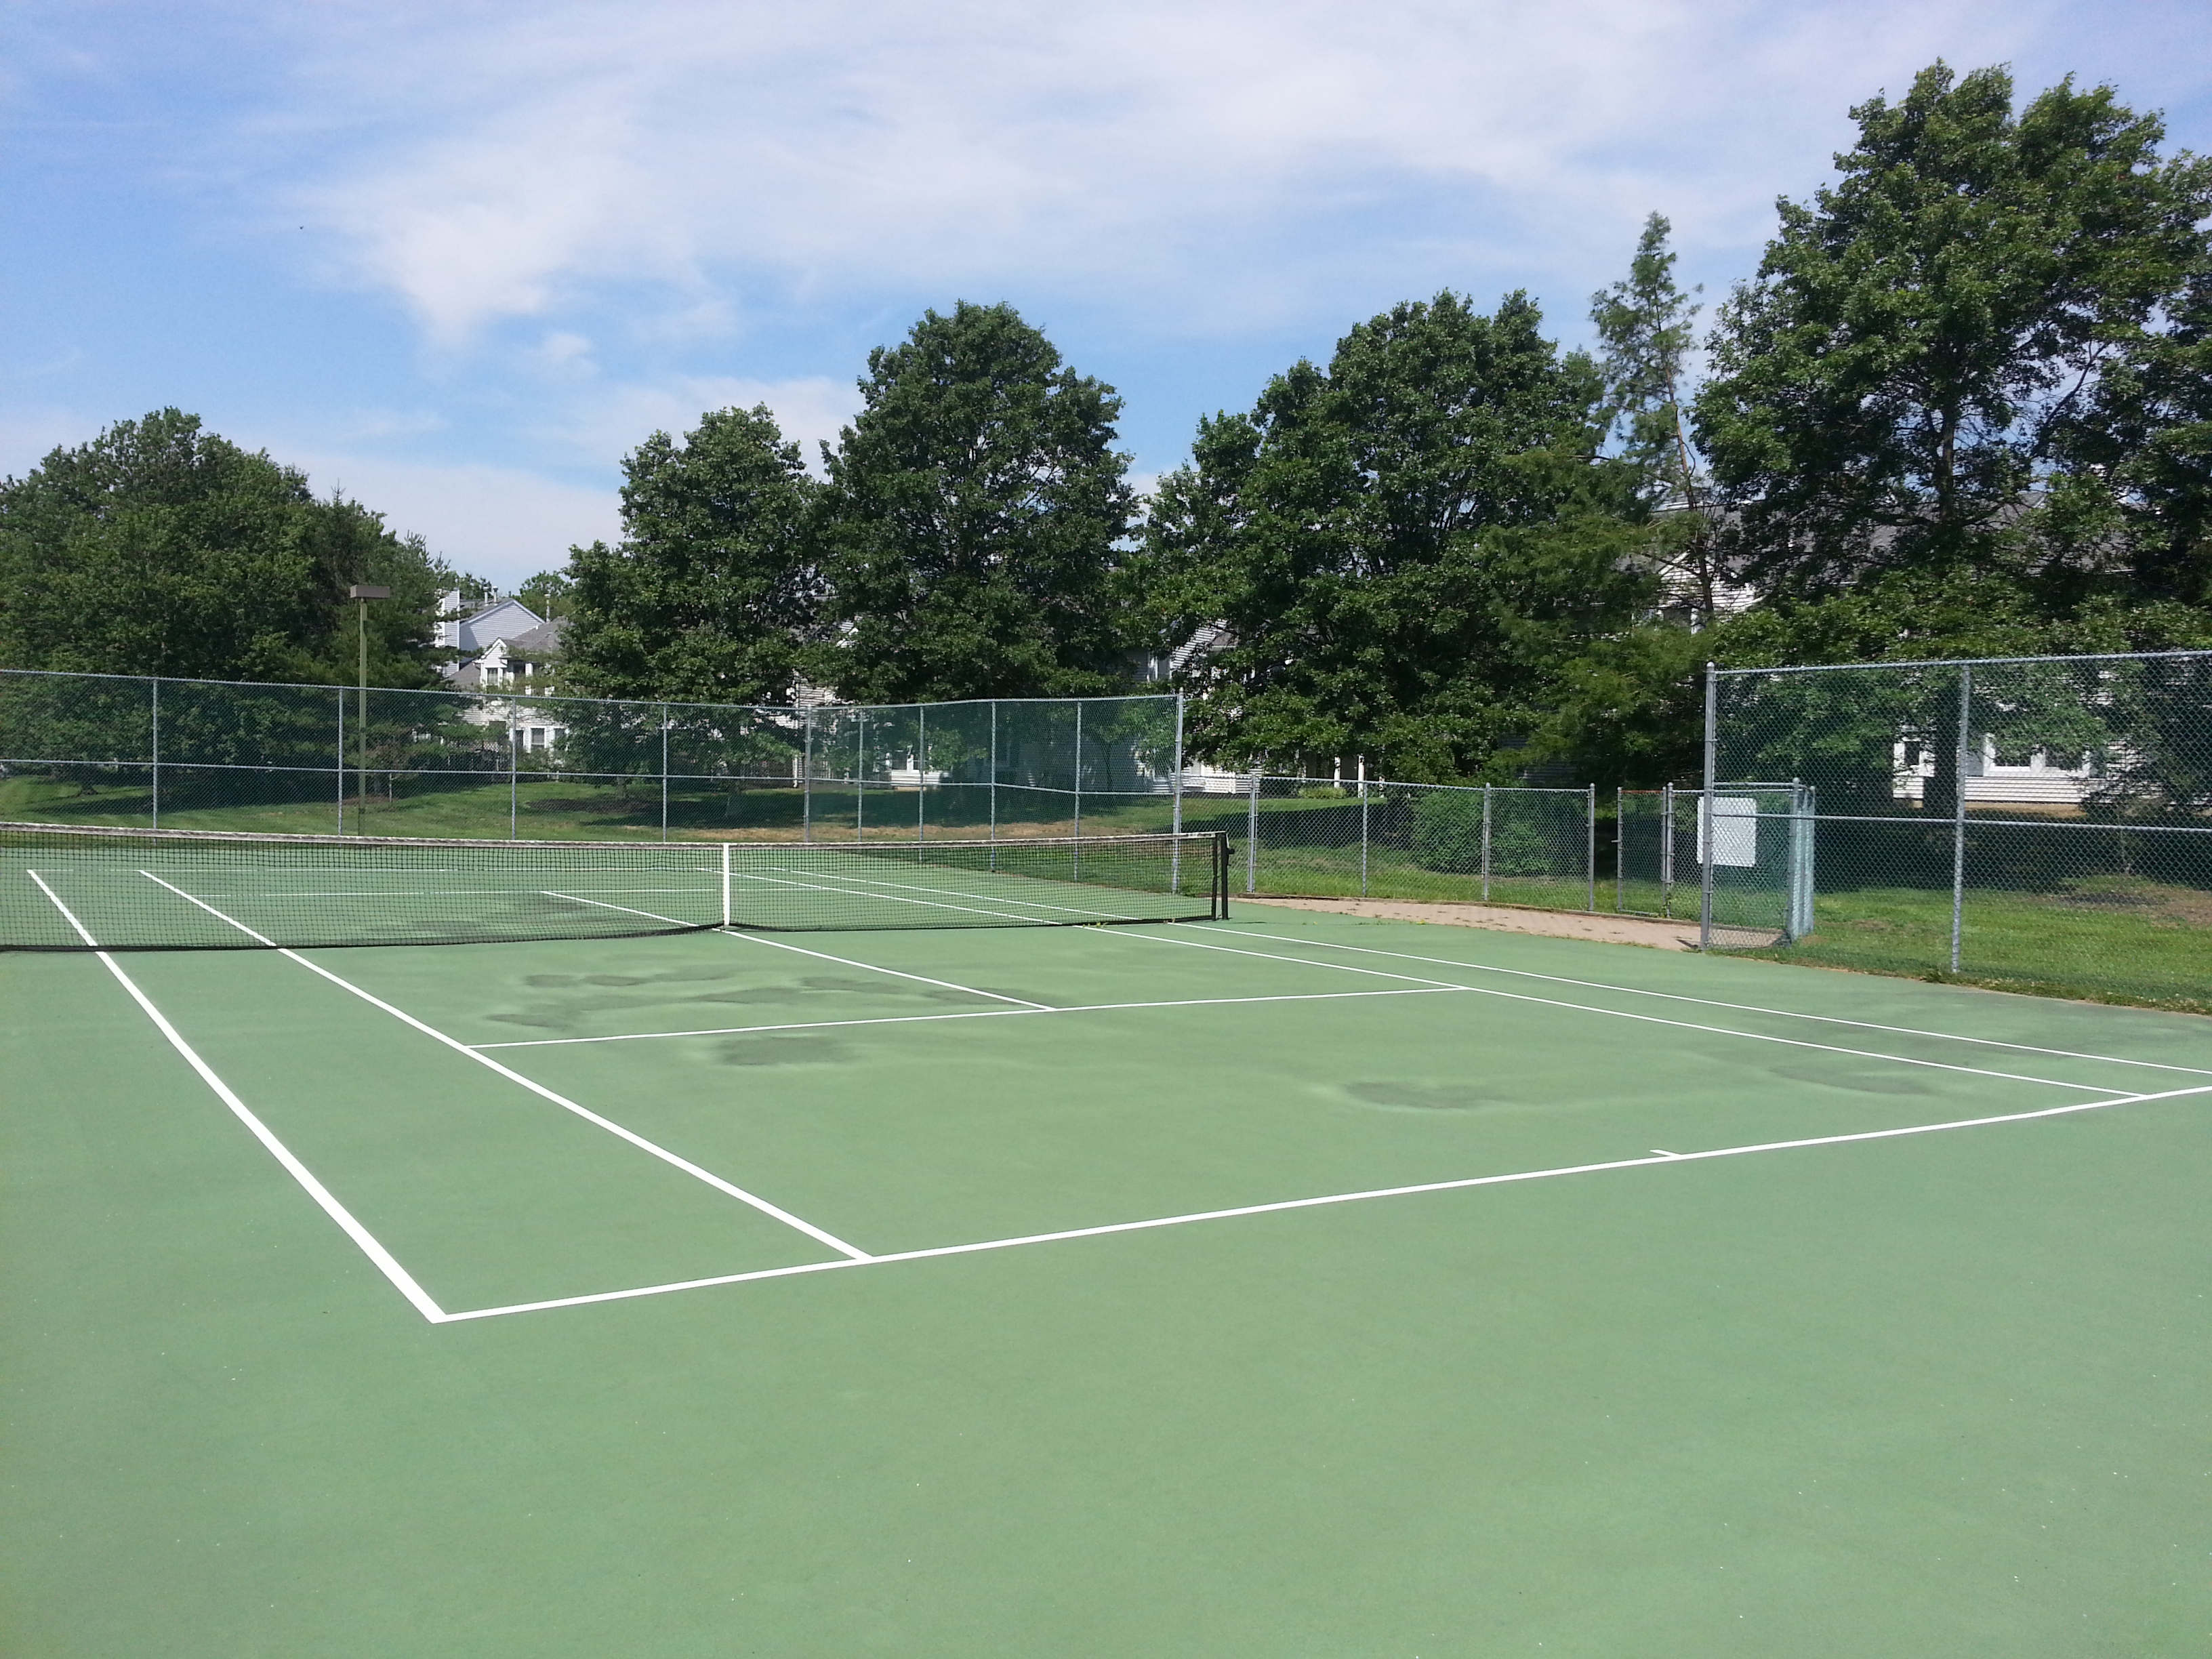 This tennis court is among the amenities at the Villas at Poplar Brook in Ocean Twp.